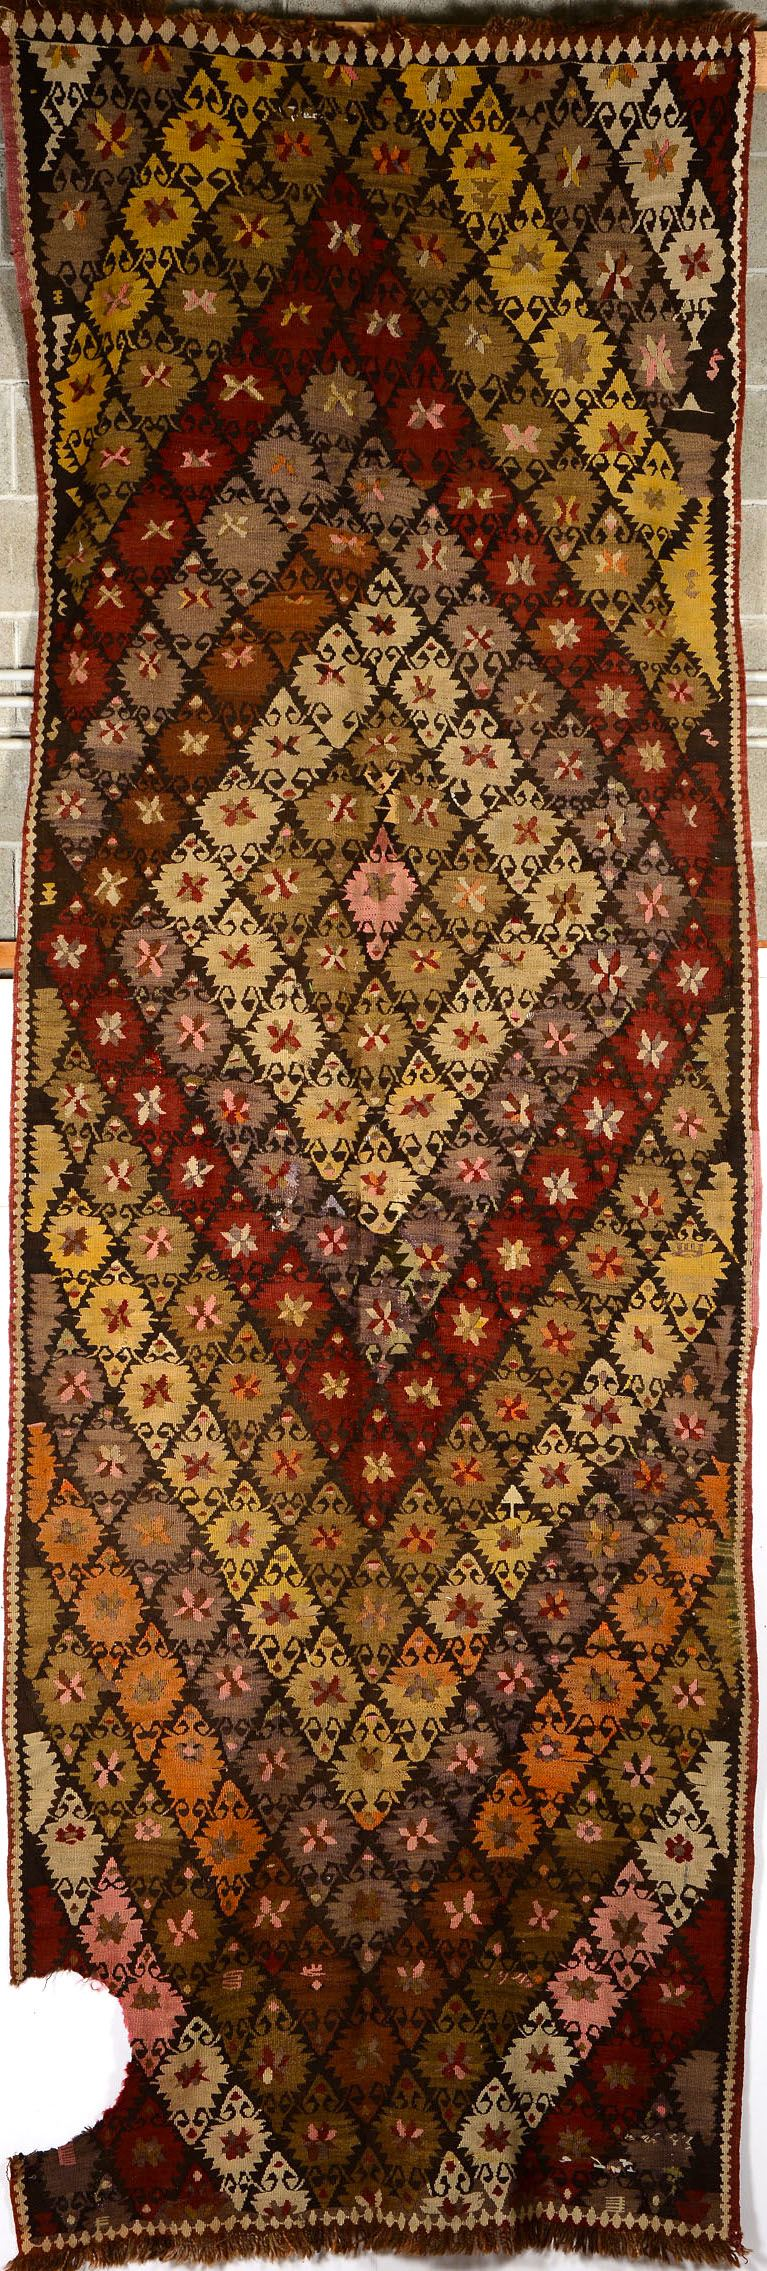 Kilim, Persia fine XIX secolo  - Auction Furnitures, Paintings and Works of Art - Cambi Casa d'Aste